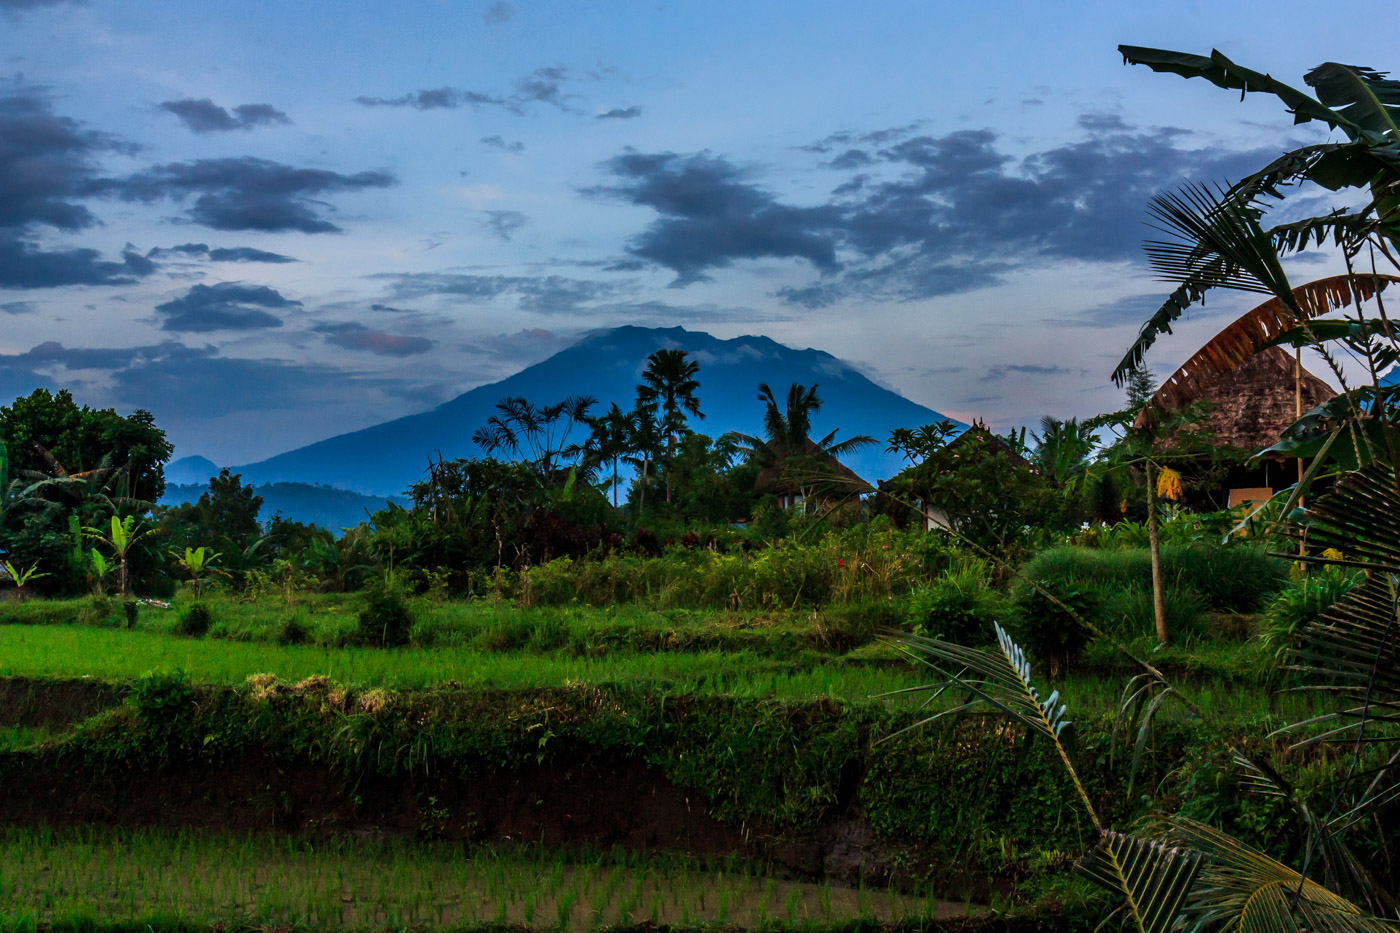 It's no surprise that Mt. Agung is holy.